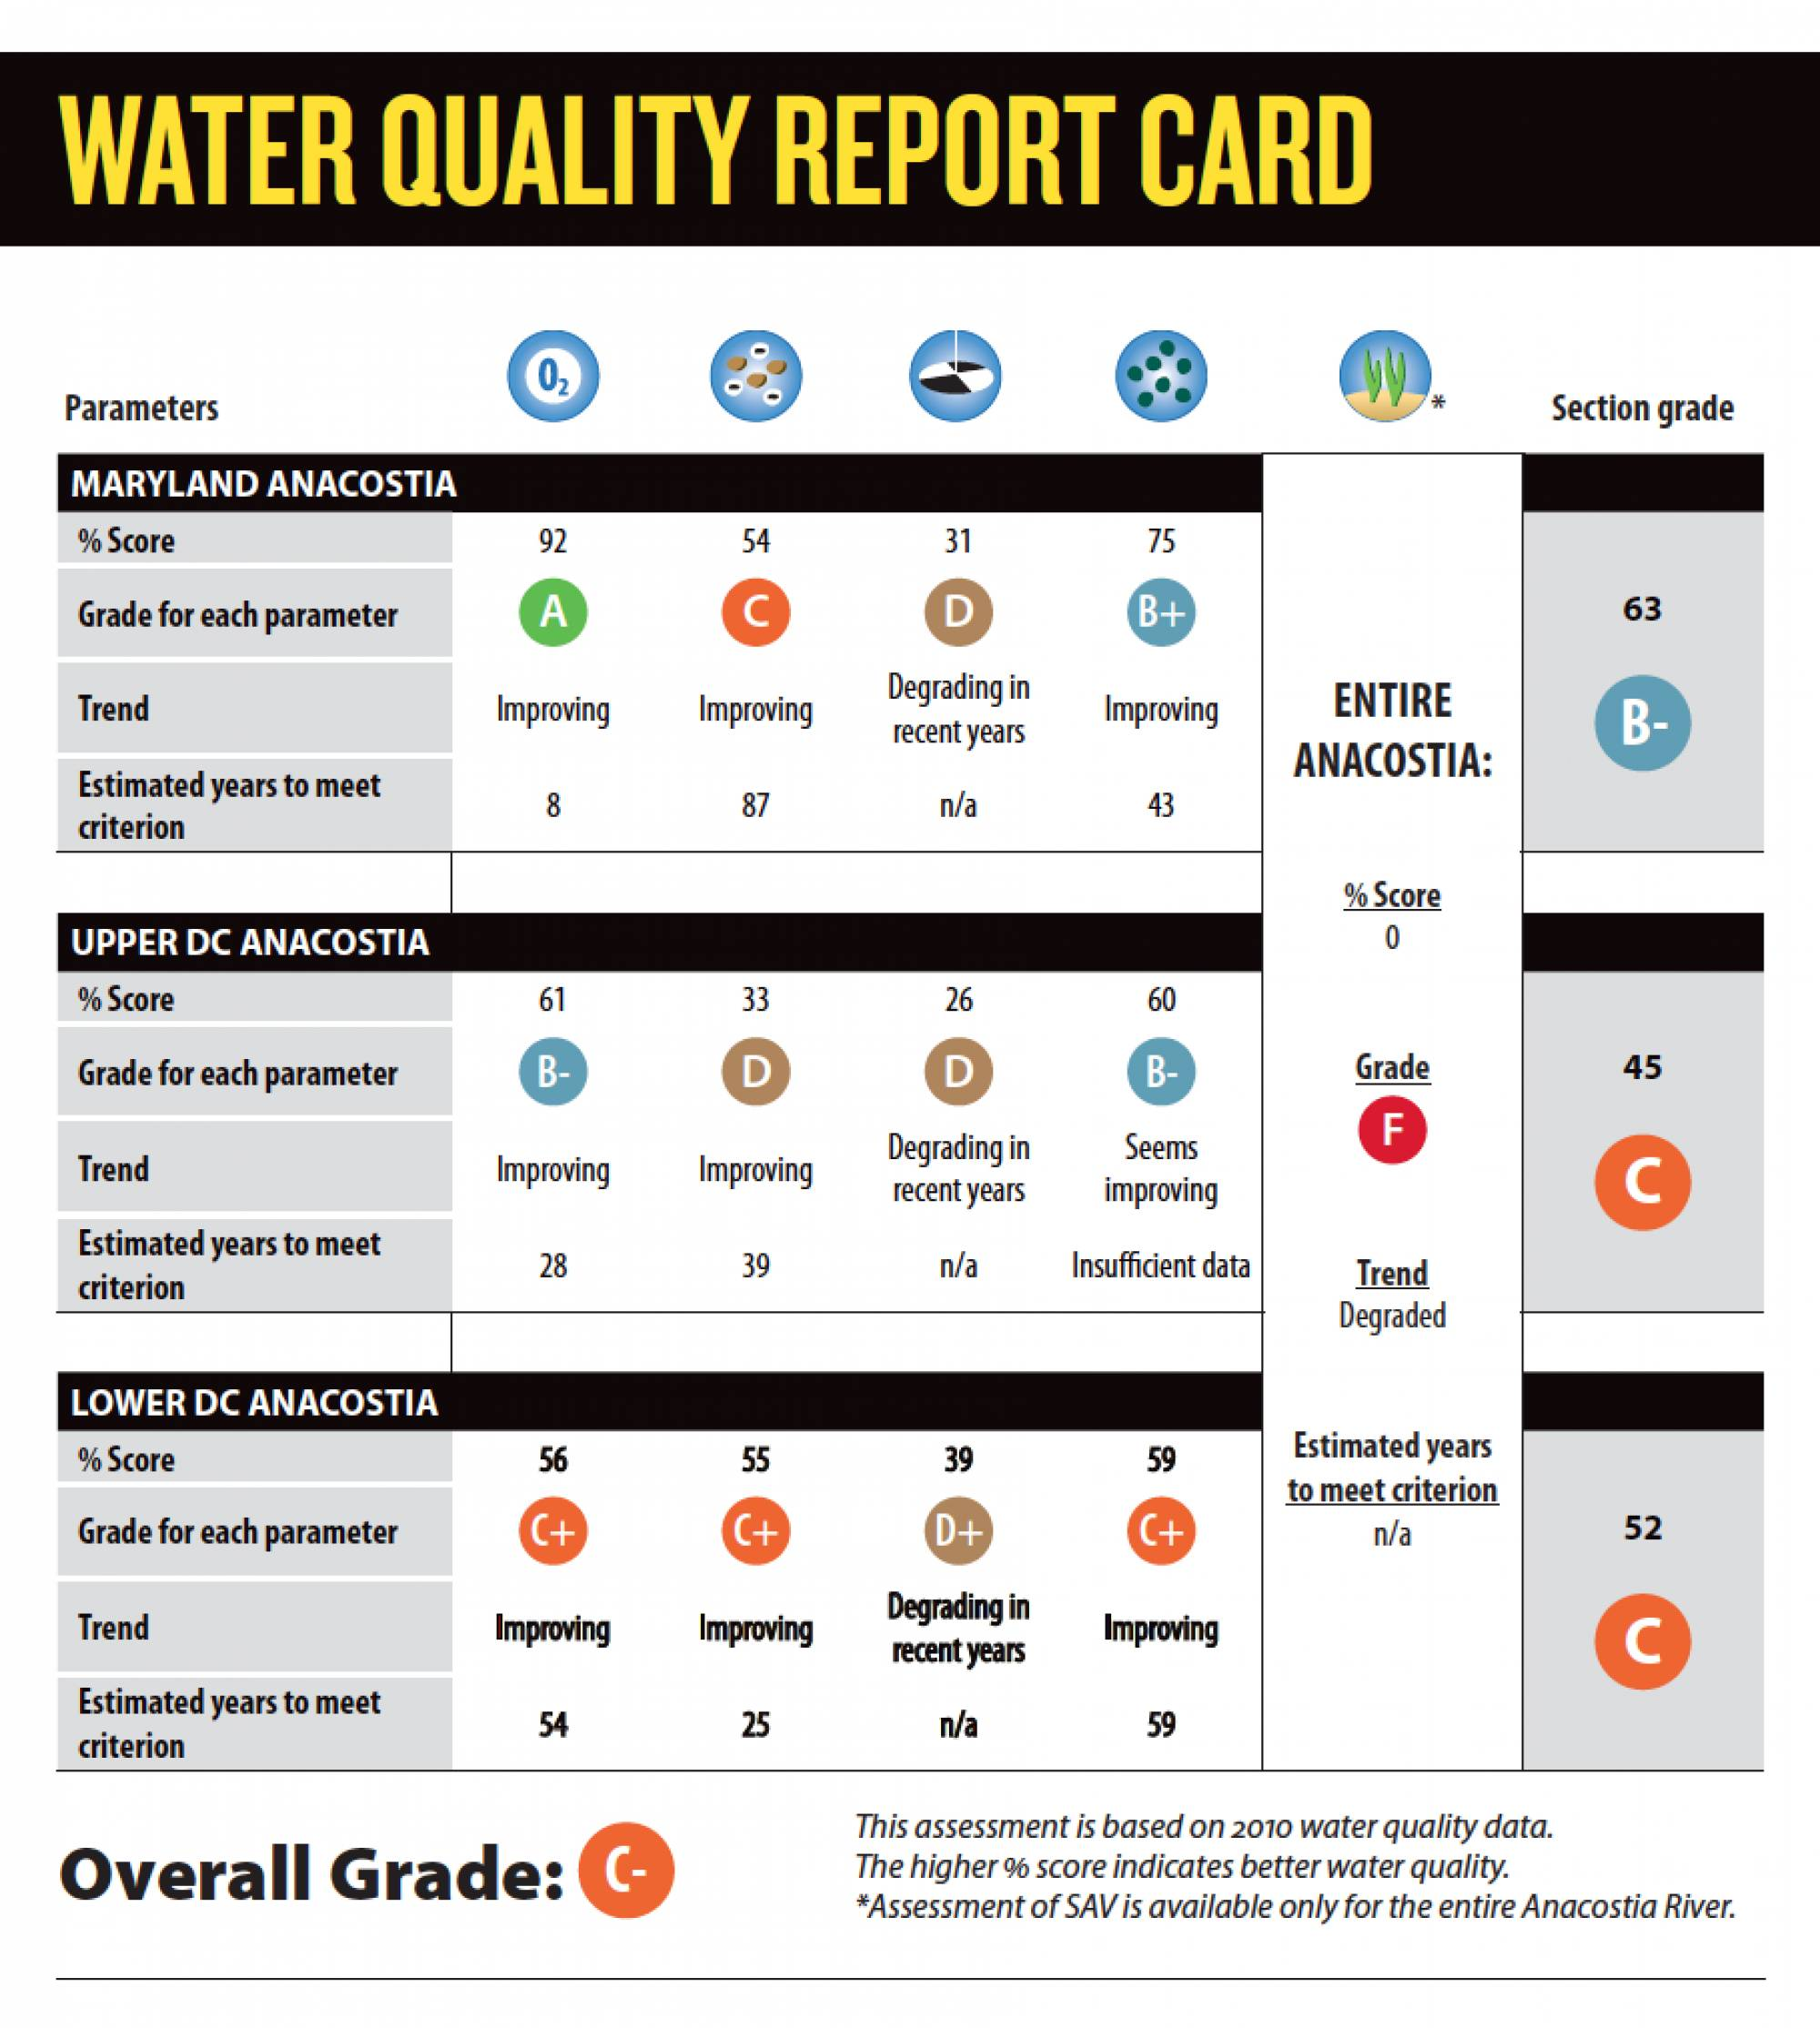 2011 State of the Anacostia River Report Card (released in 2012)